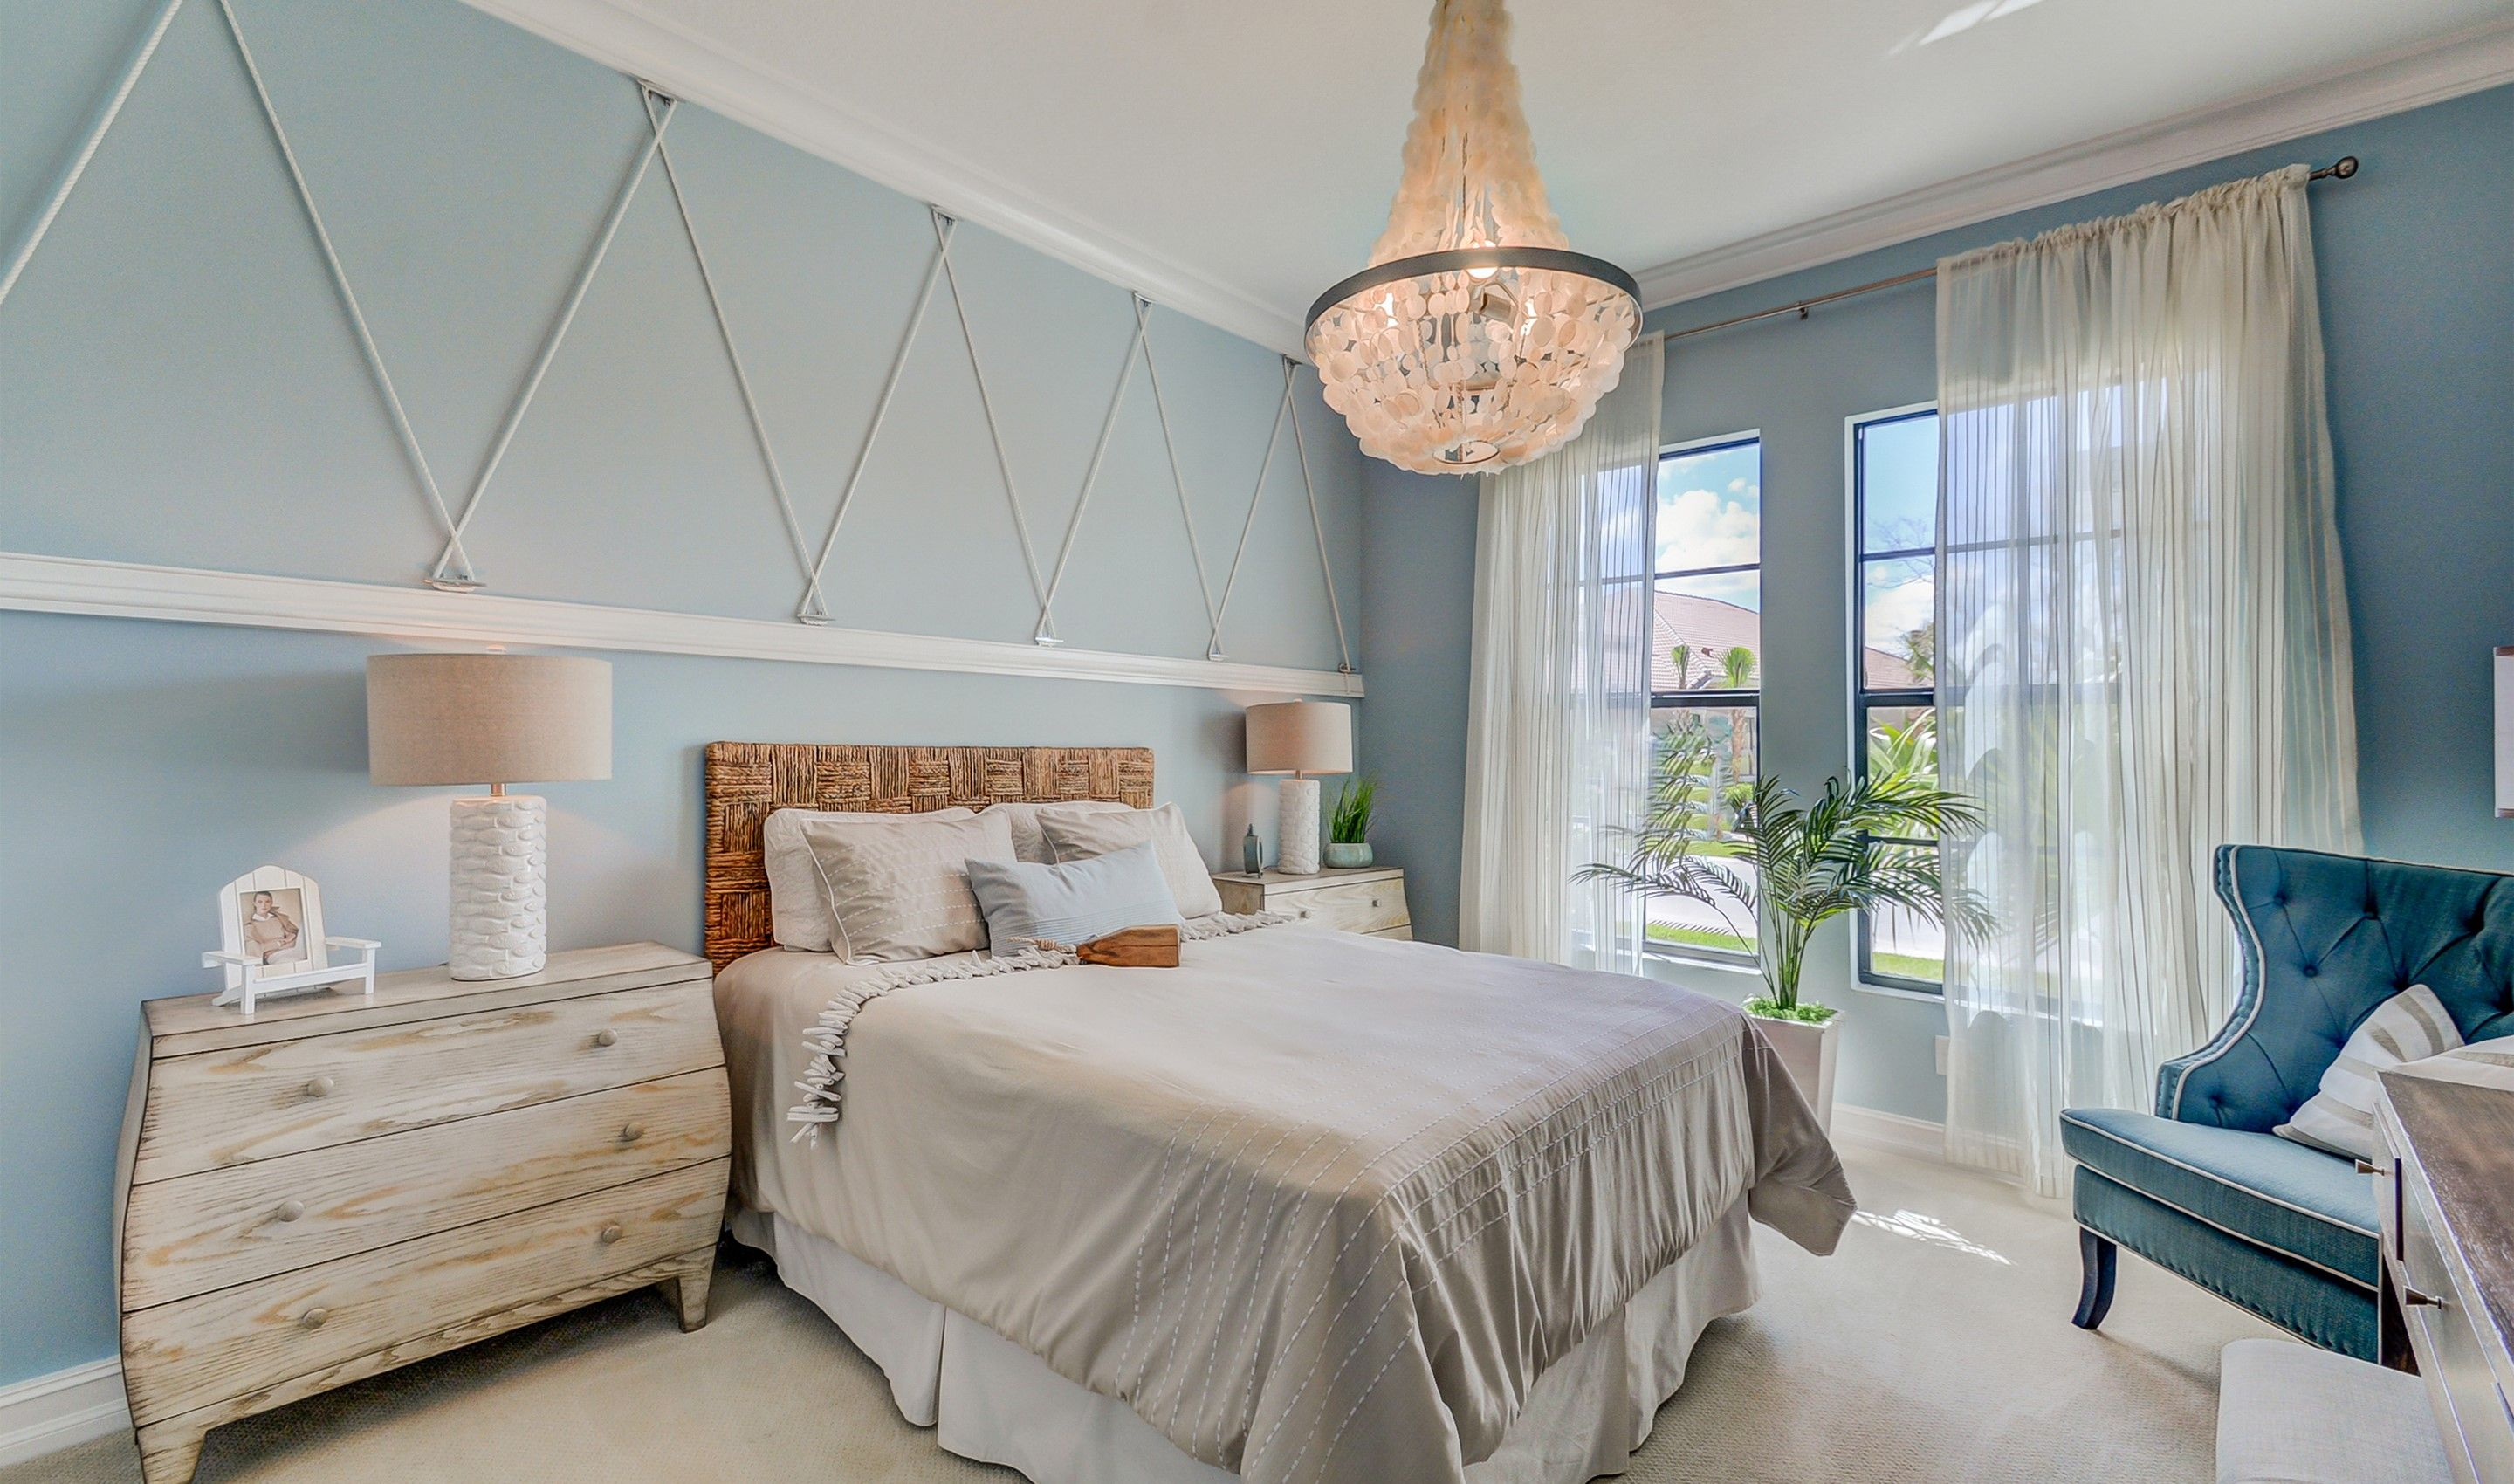 Bedroom featured in the Flora By K. Hovnanian's® Four Seasons in Broward County-Ft. Lauderdale, FL